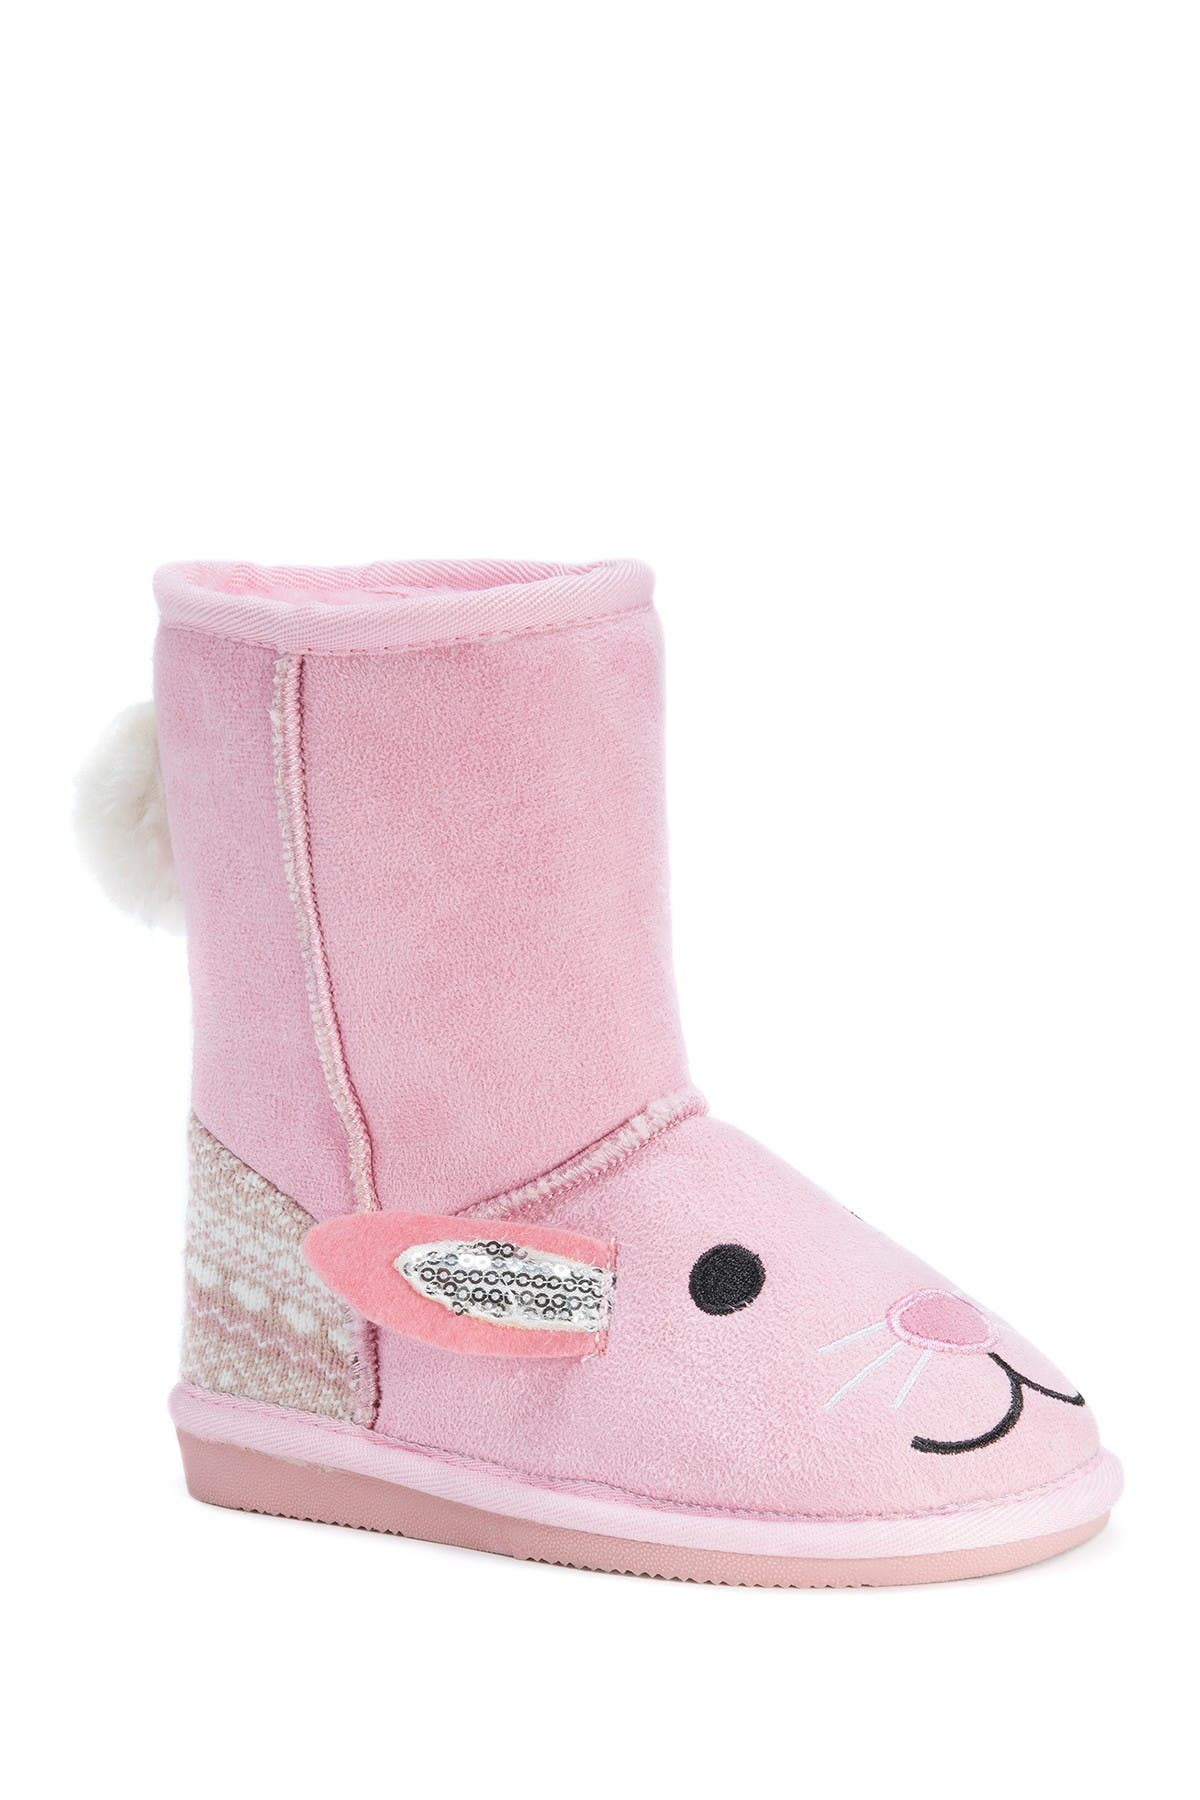 Image of MUK LUKS Faux Fur Lined Boot